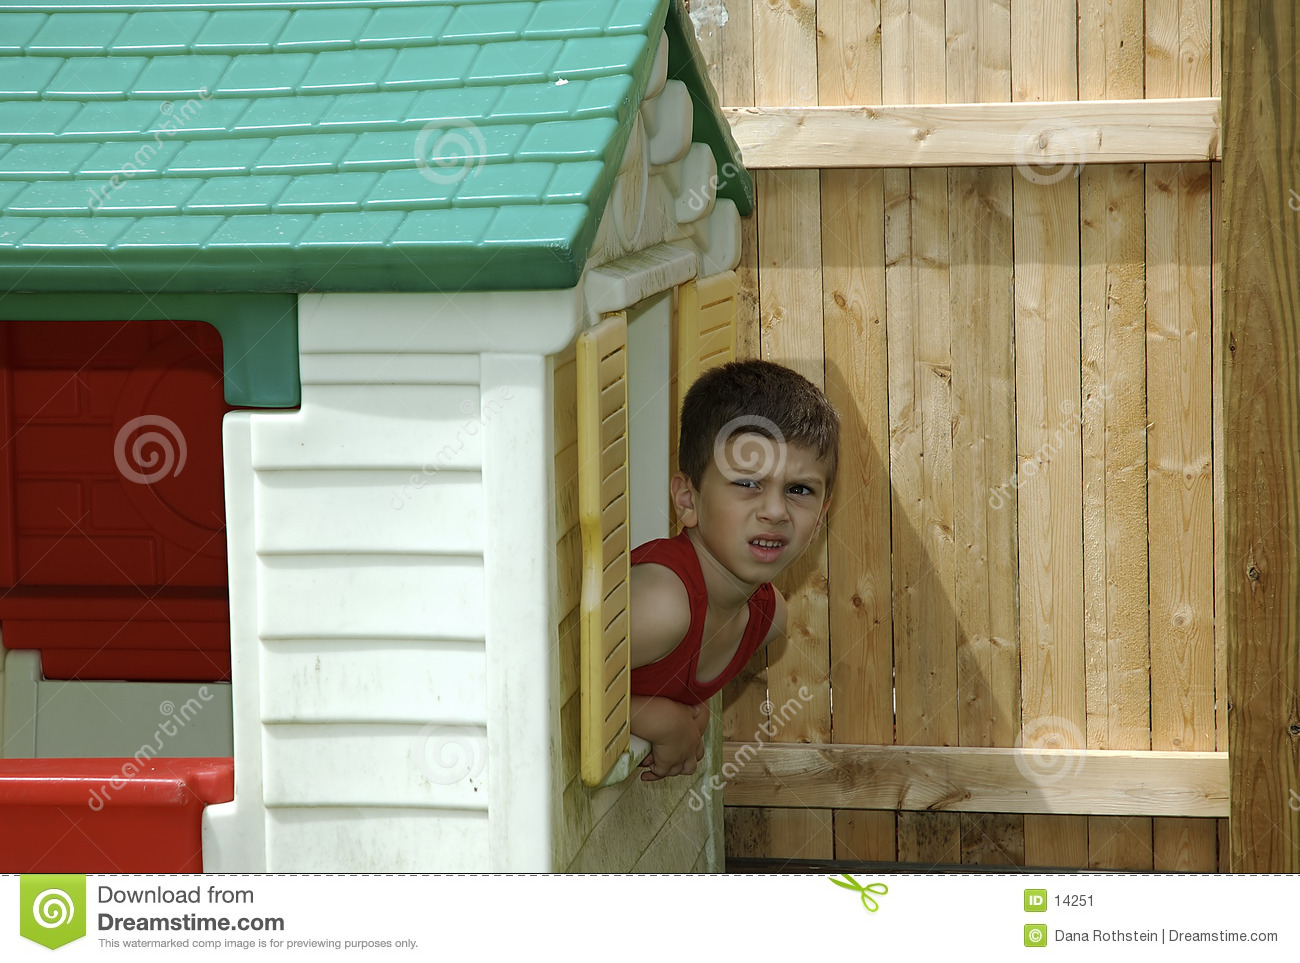 Bambino in playhouse